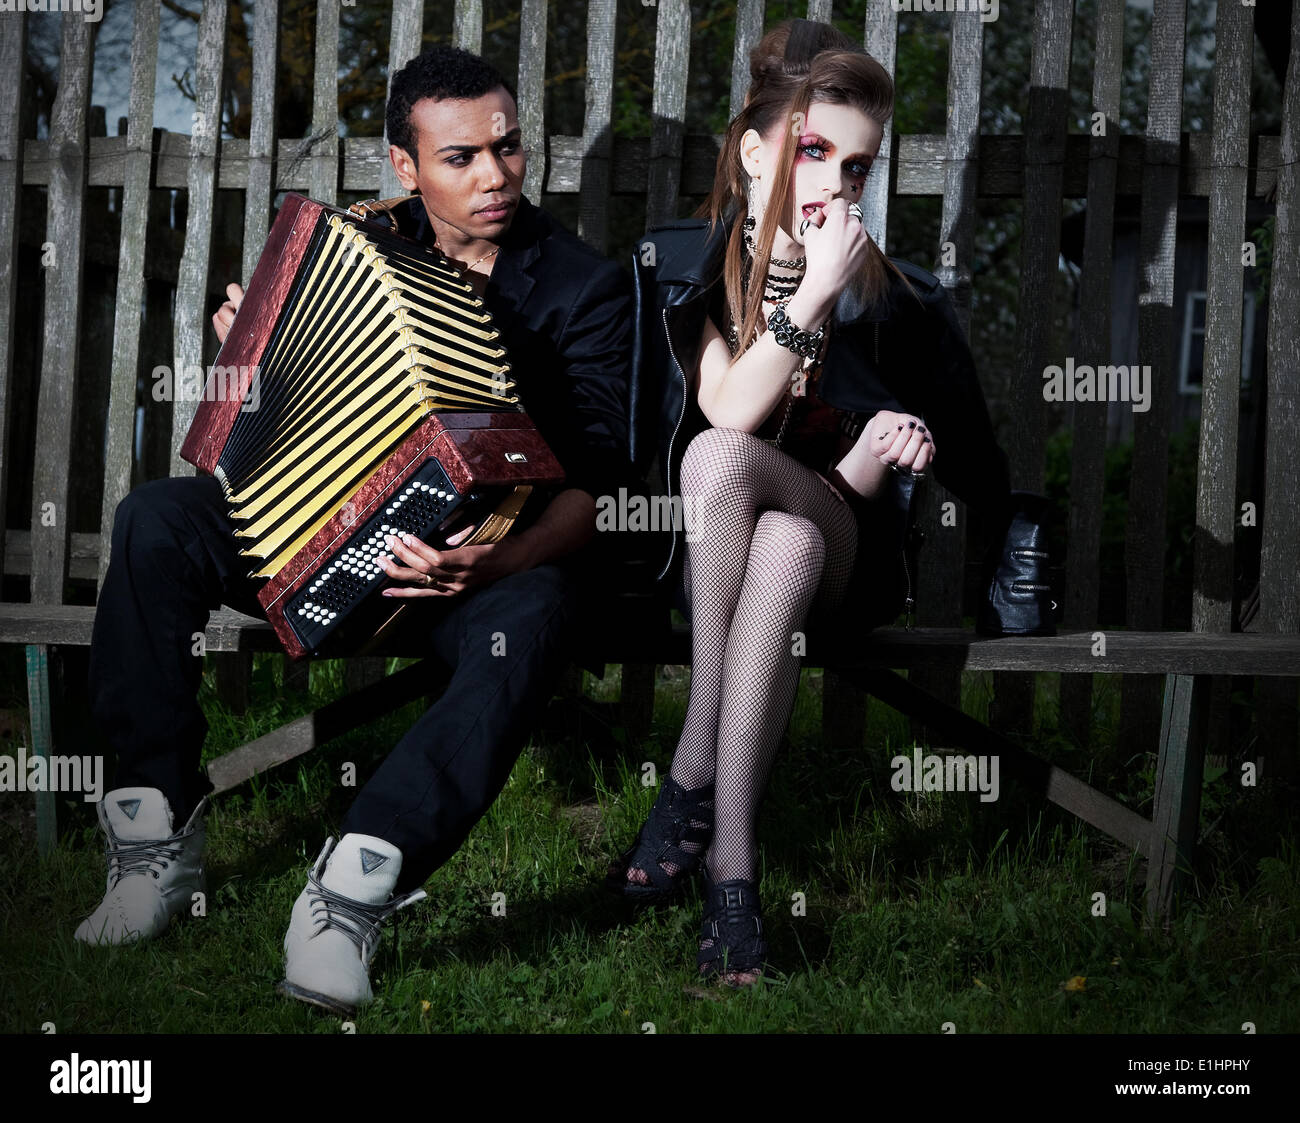 Couple young people - black man and white woman sitting on bench against the fence. Accordion. Countryside. Serenade - Stock Image